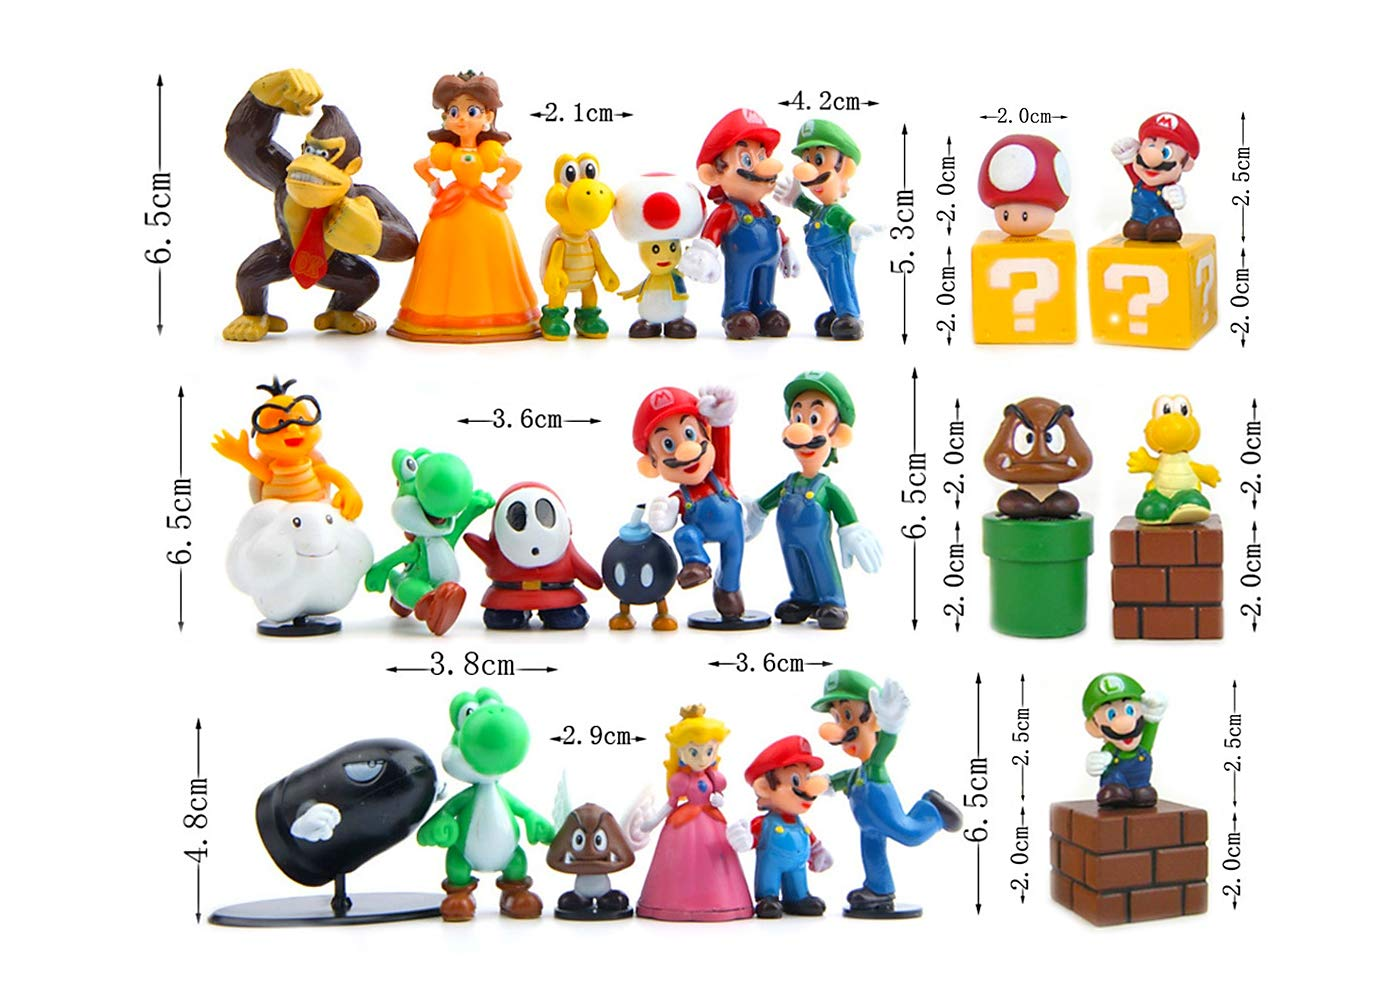 Mario Brothers Toys Multiple Characters Mario Bros Figurines Detailed Design Pantshop Super Mario Action Figures Set Of 23 Mario Pvc Toy Figures For Kids Adults Premium Cake Toppers Toys Games